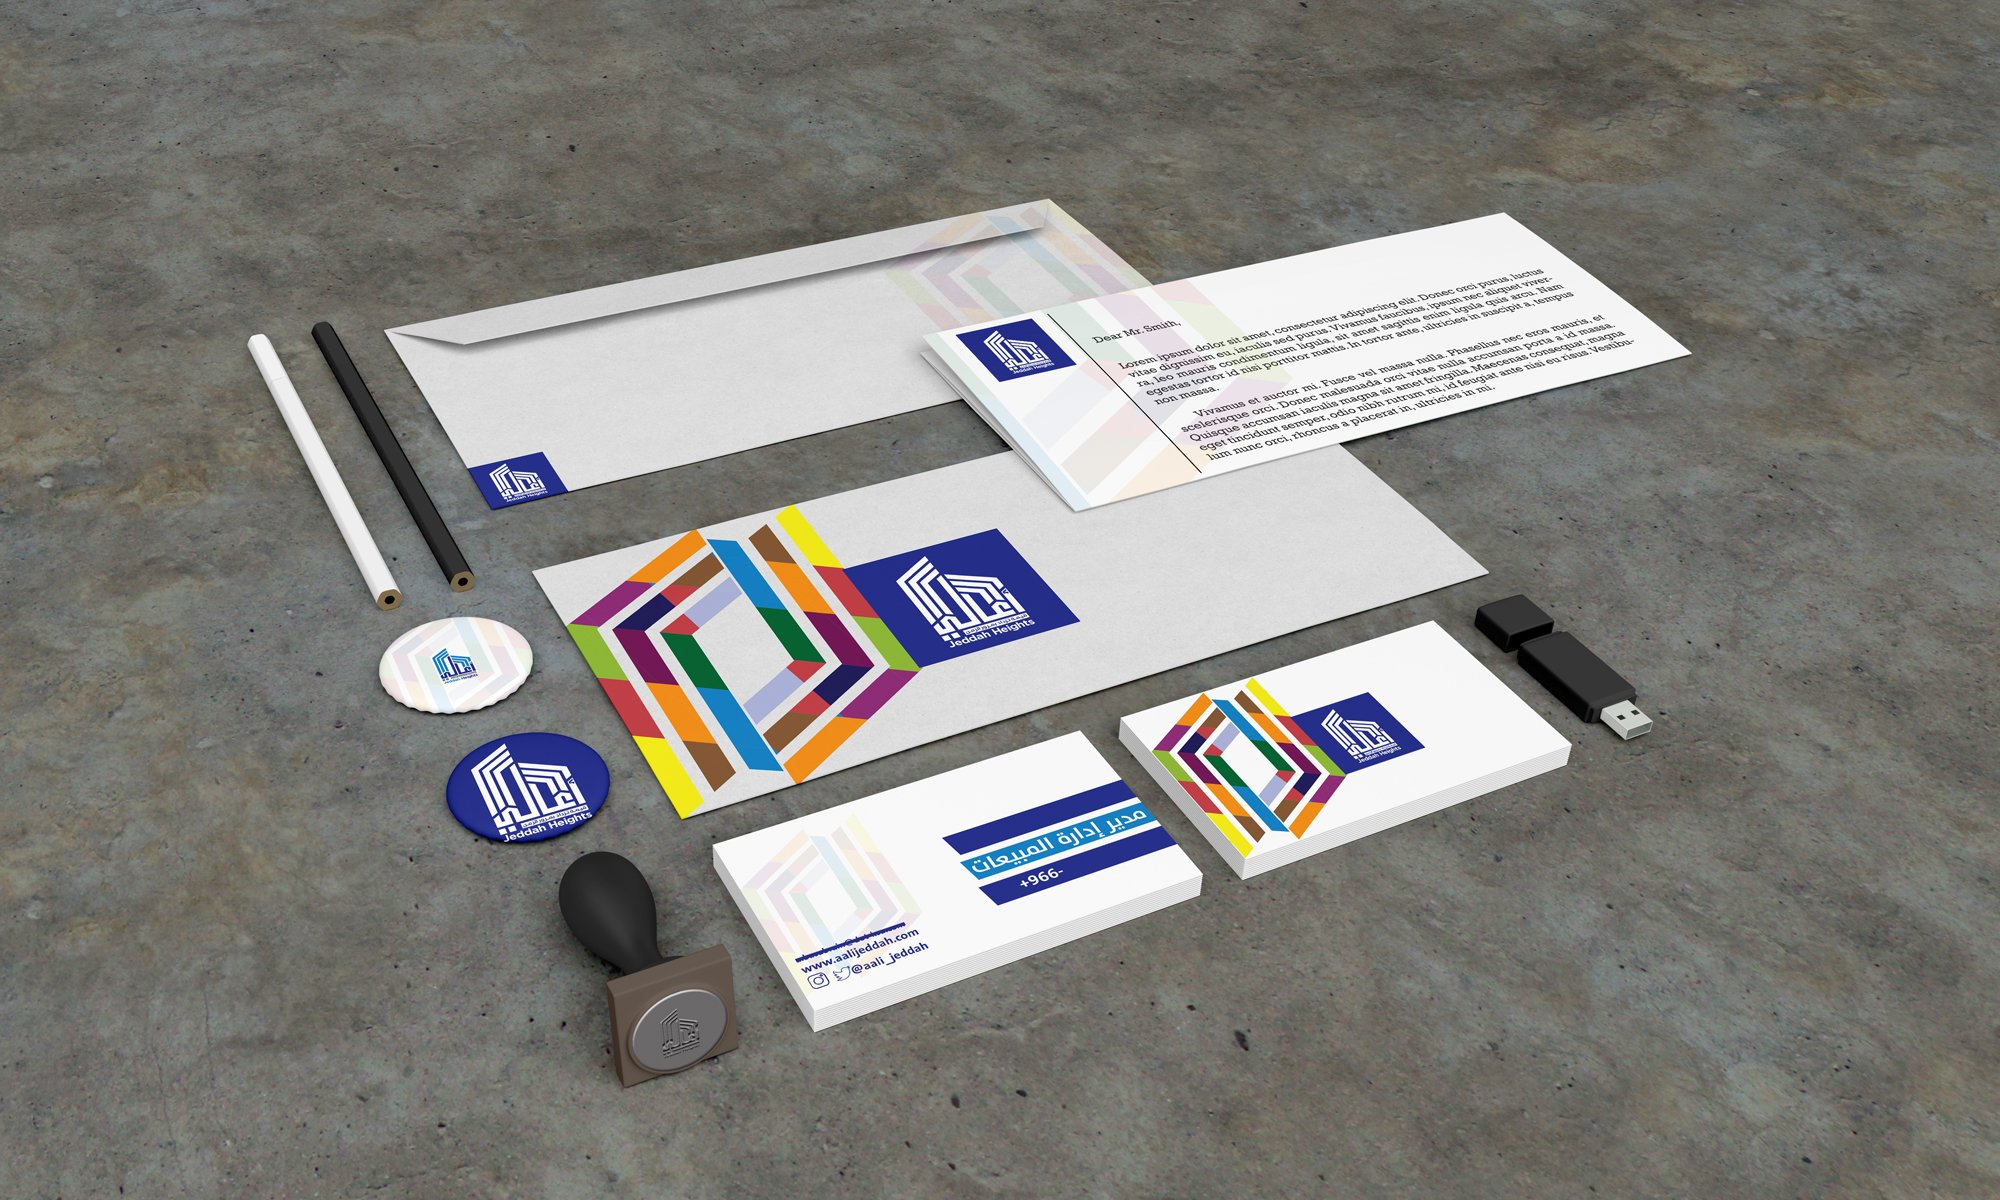 Aali Jeddah Stationery Design